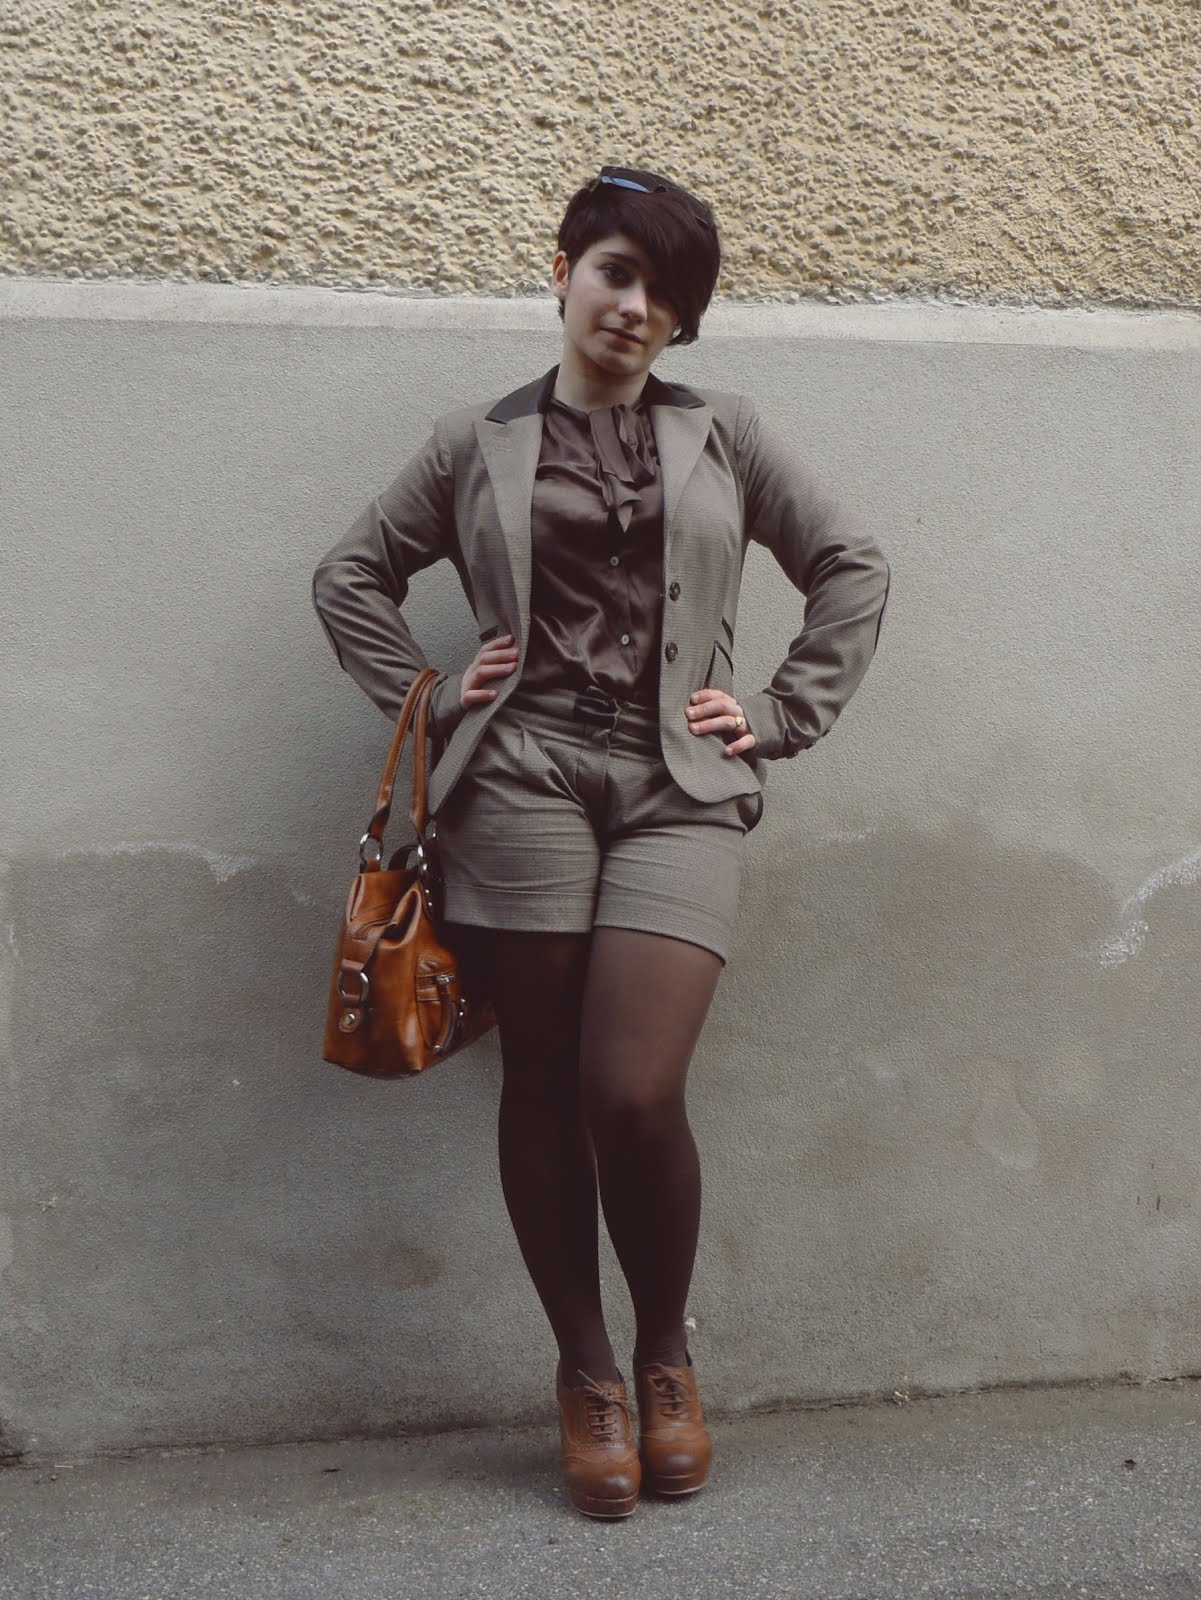 quite kafkaesque.: Outfit-Post: Clouds in my coffee